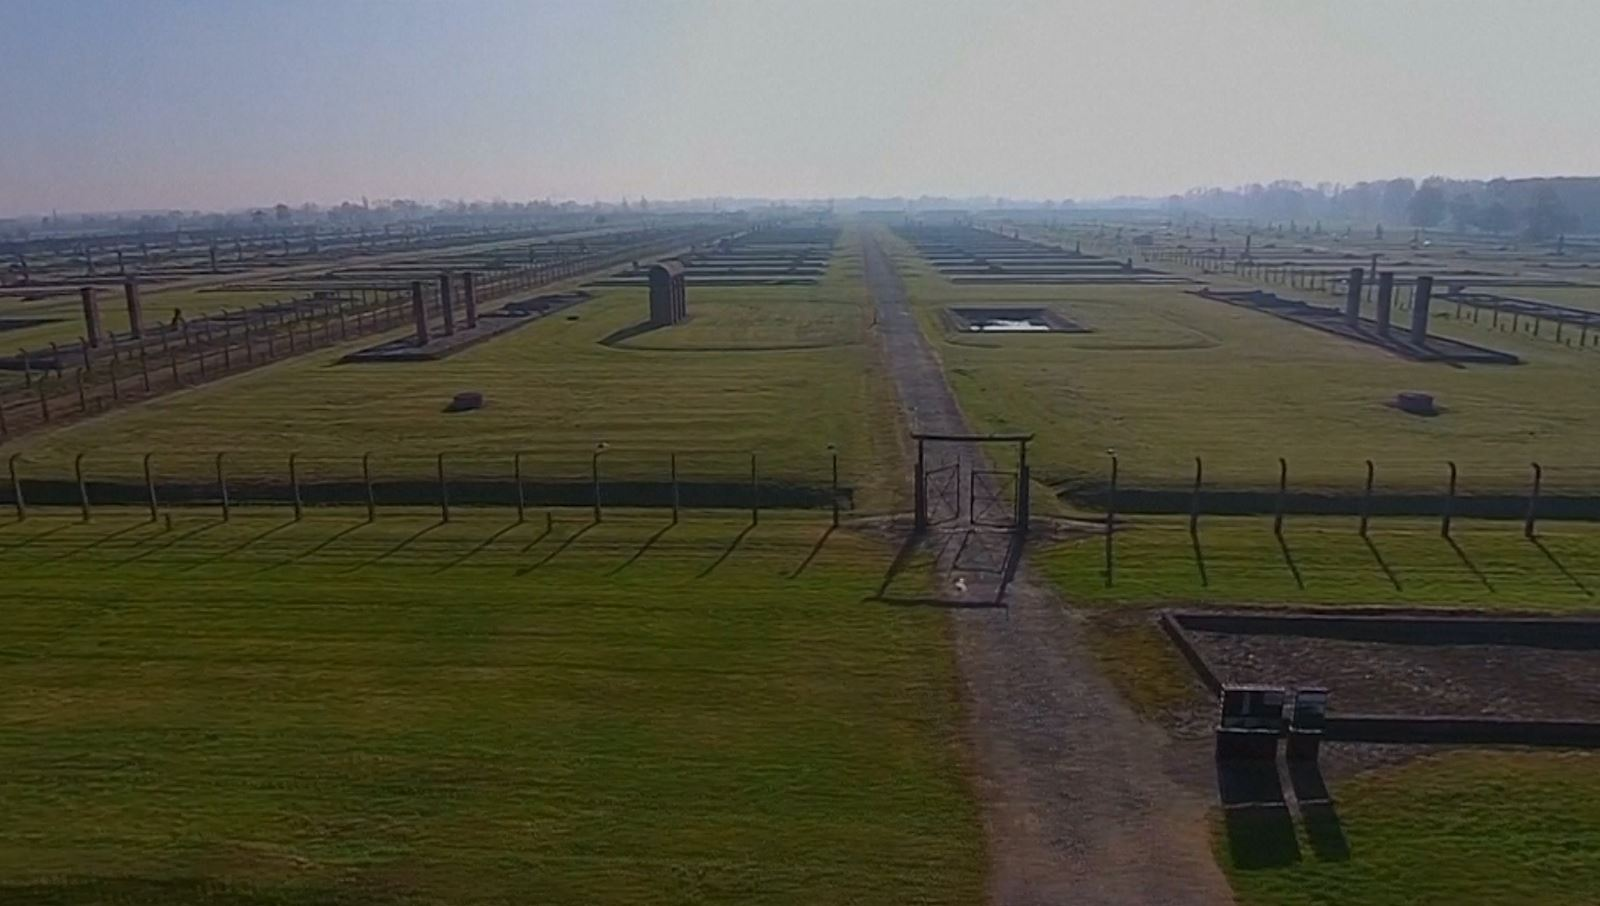 Holocaust Memorial Day 2015: Auschwitz concentration camp filmed from the sky in drone video